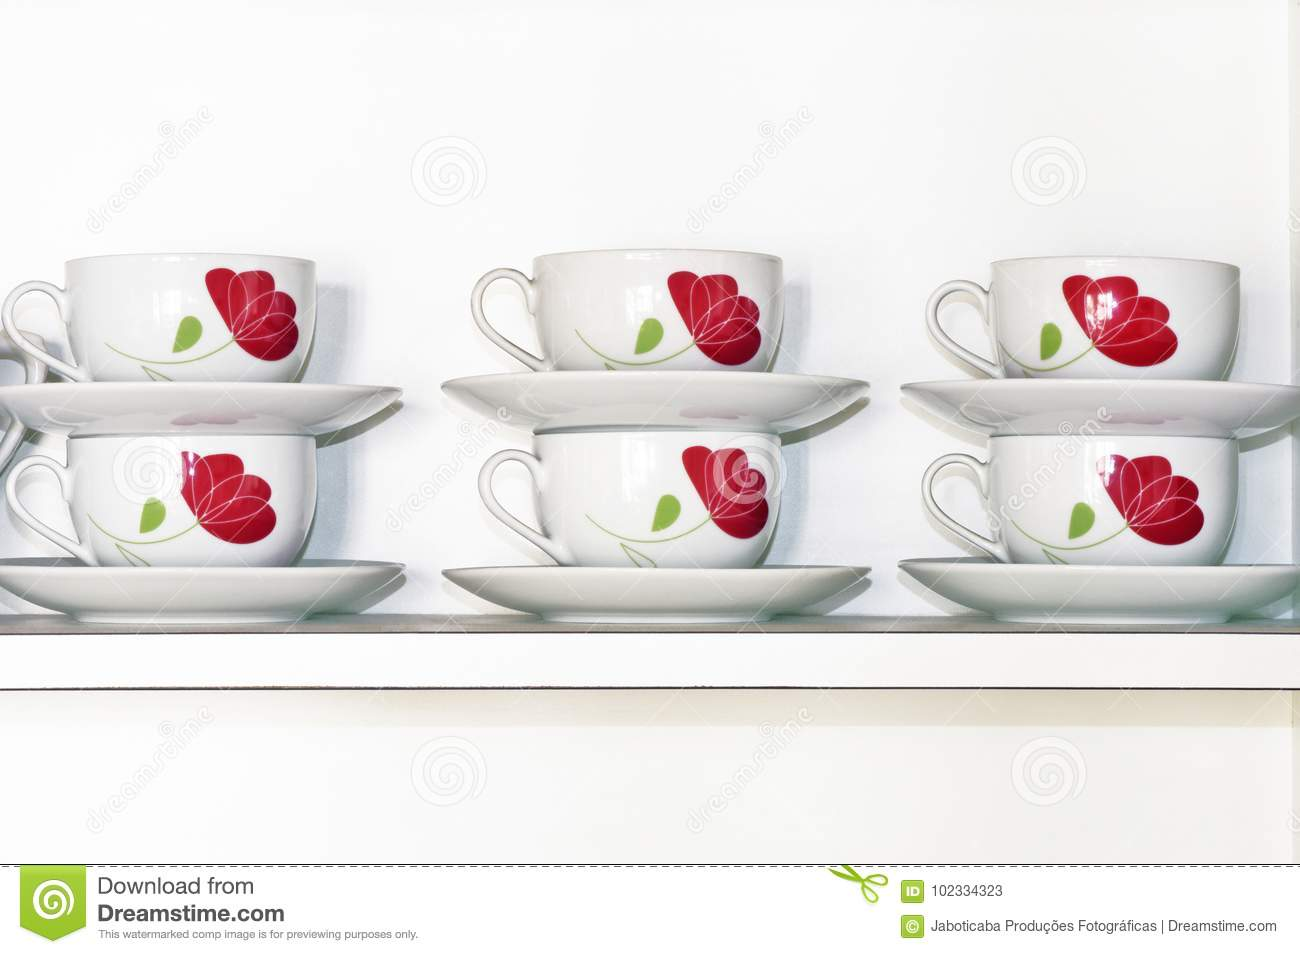 White Kitchen Cabinet Shelf With Decorated Tea Cups Stock Image Image Of Instrument Easy 102334323